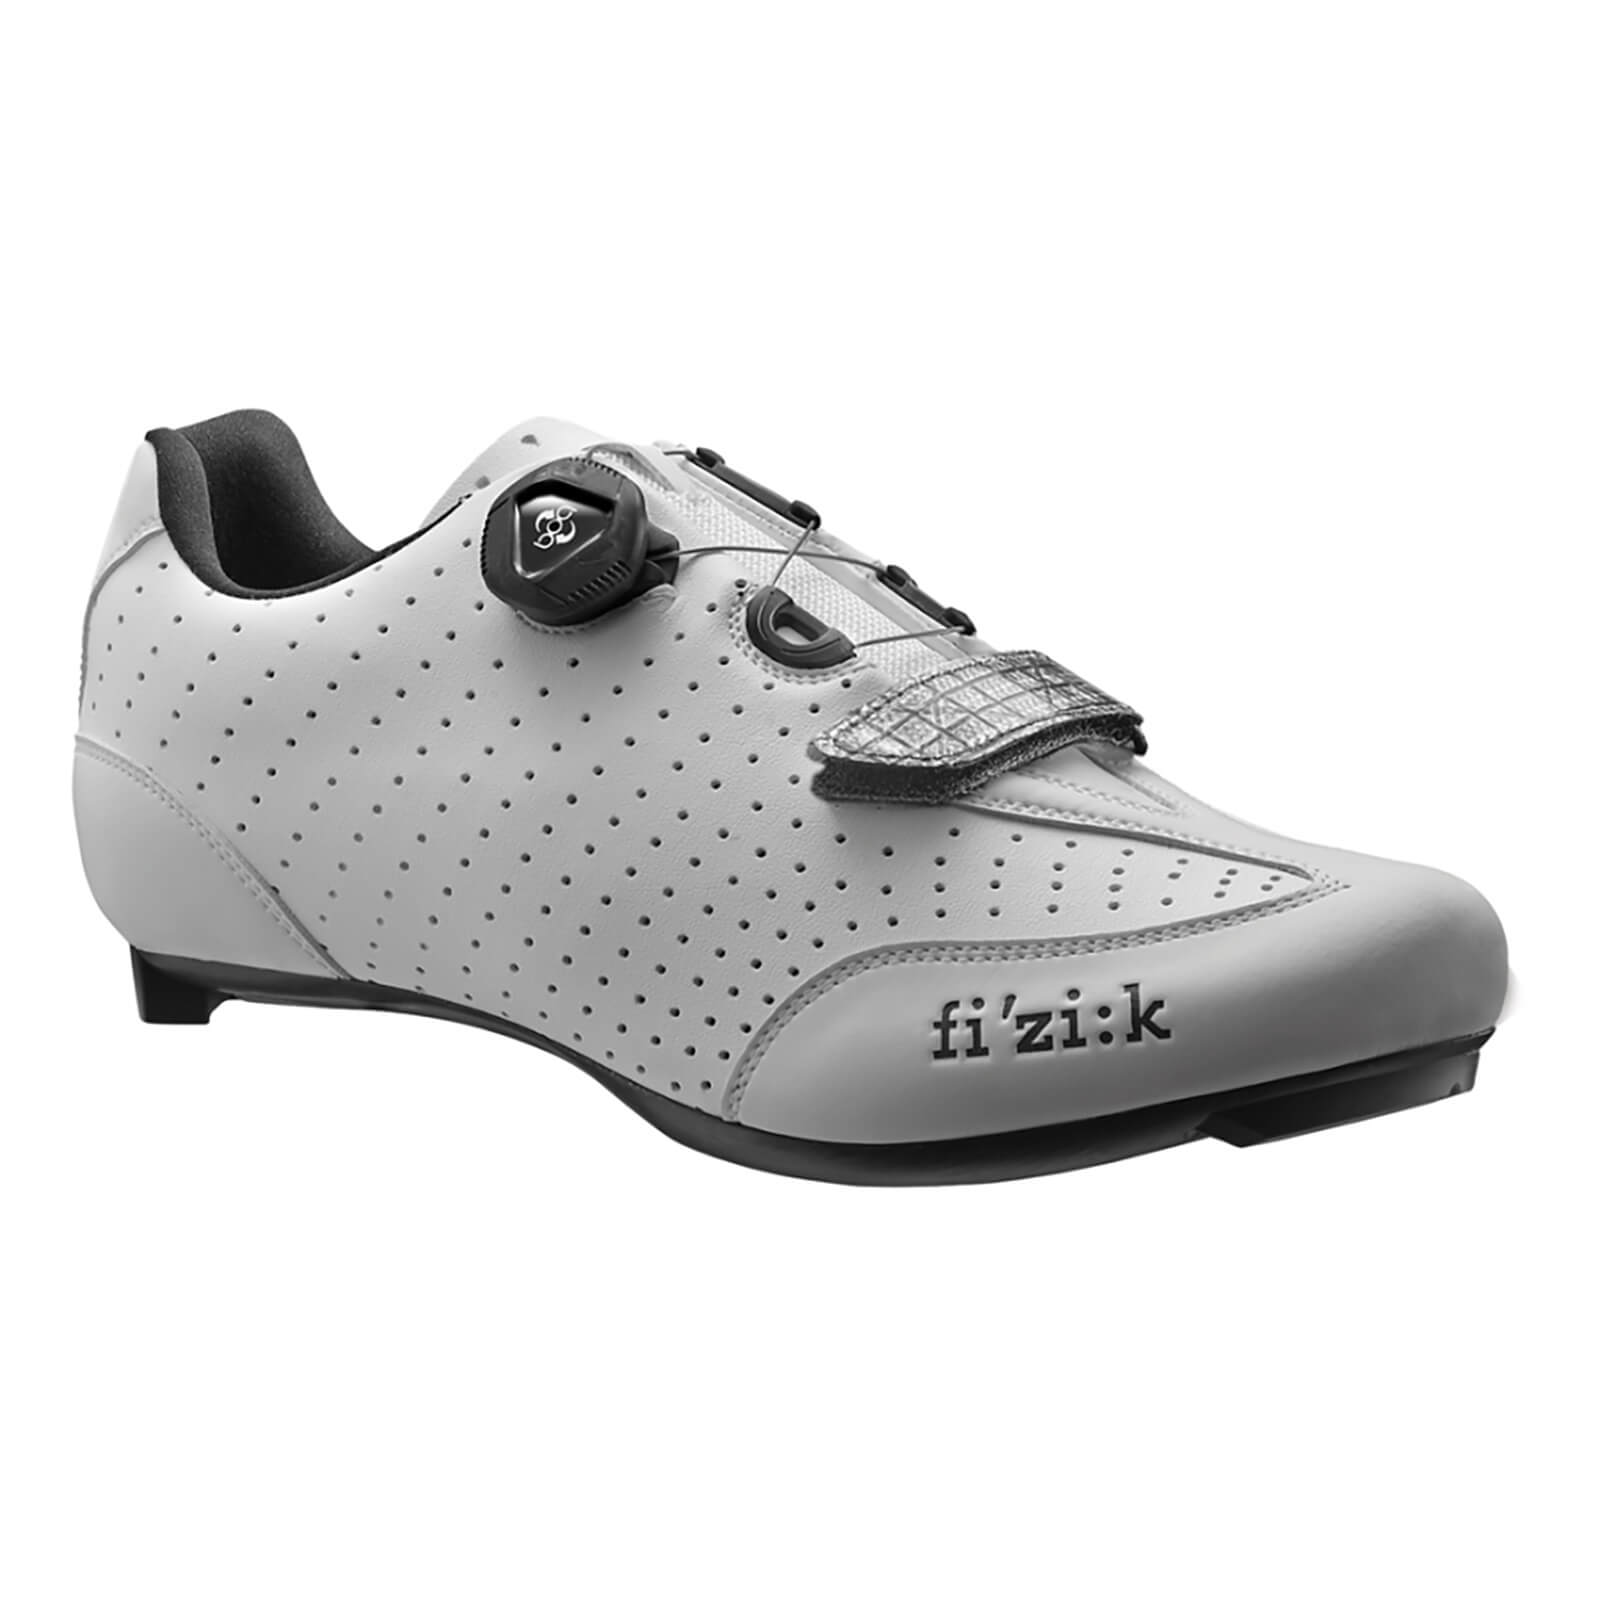 Fizik R3B Road Shoes - White/Black